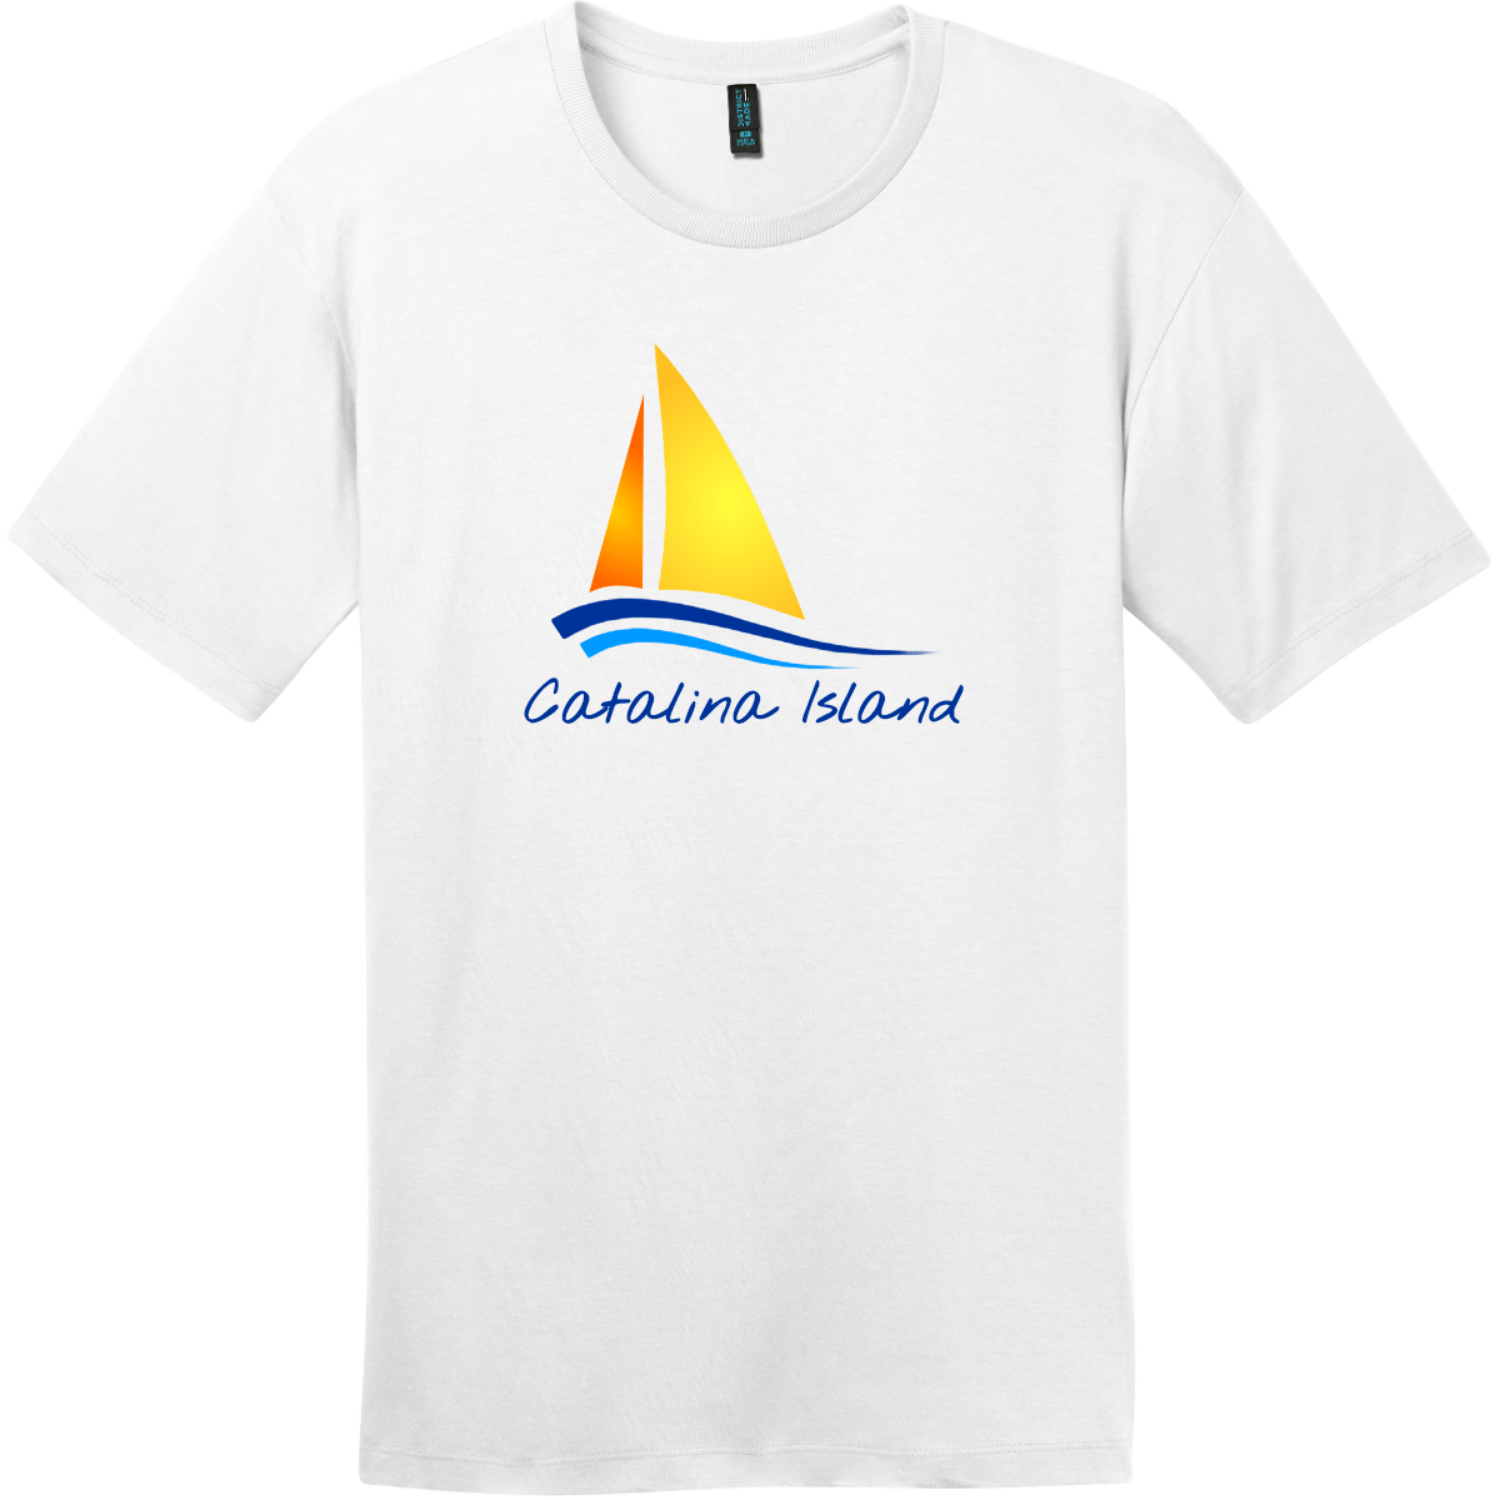 Catalina Island Sailboat T-Shirt Bright White District Perfect Weight Tee DT104